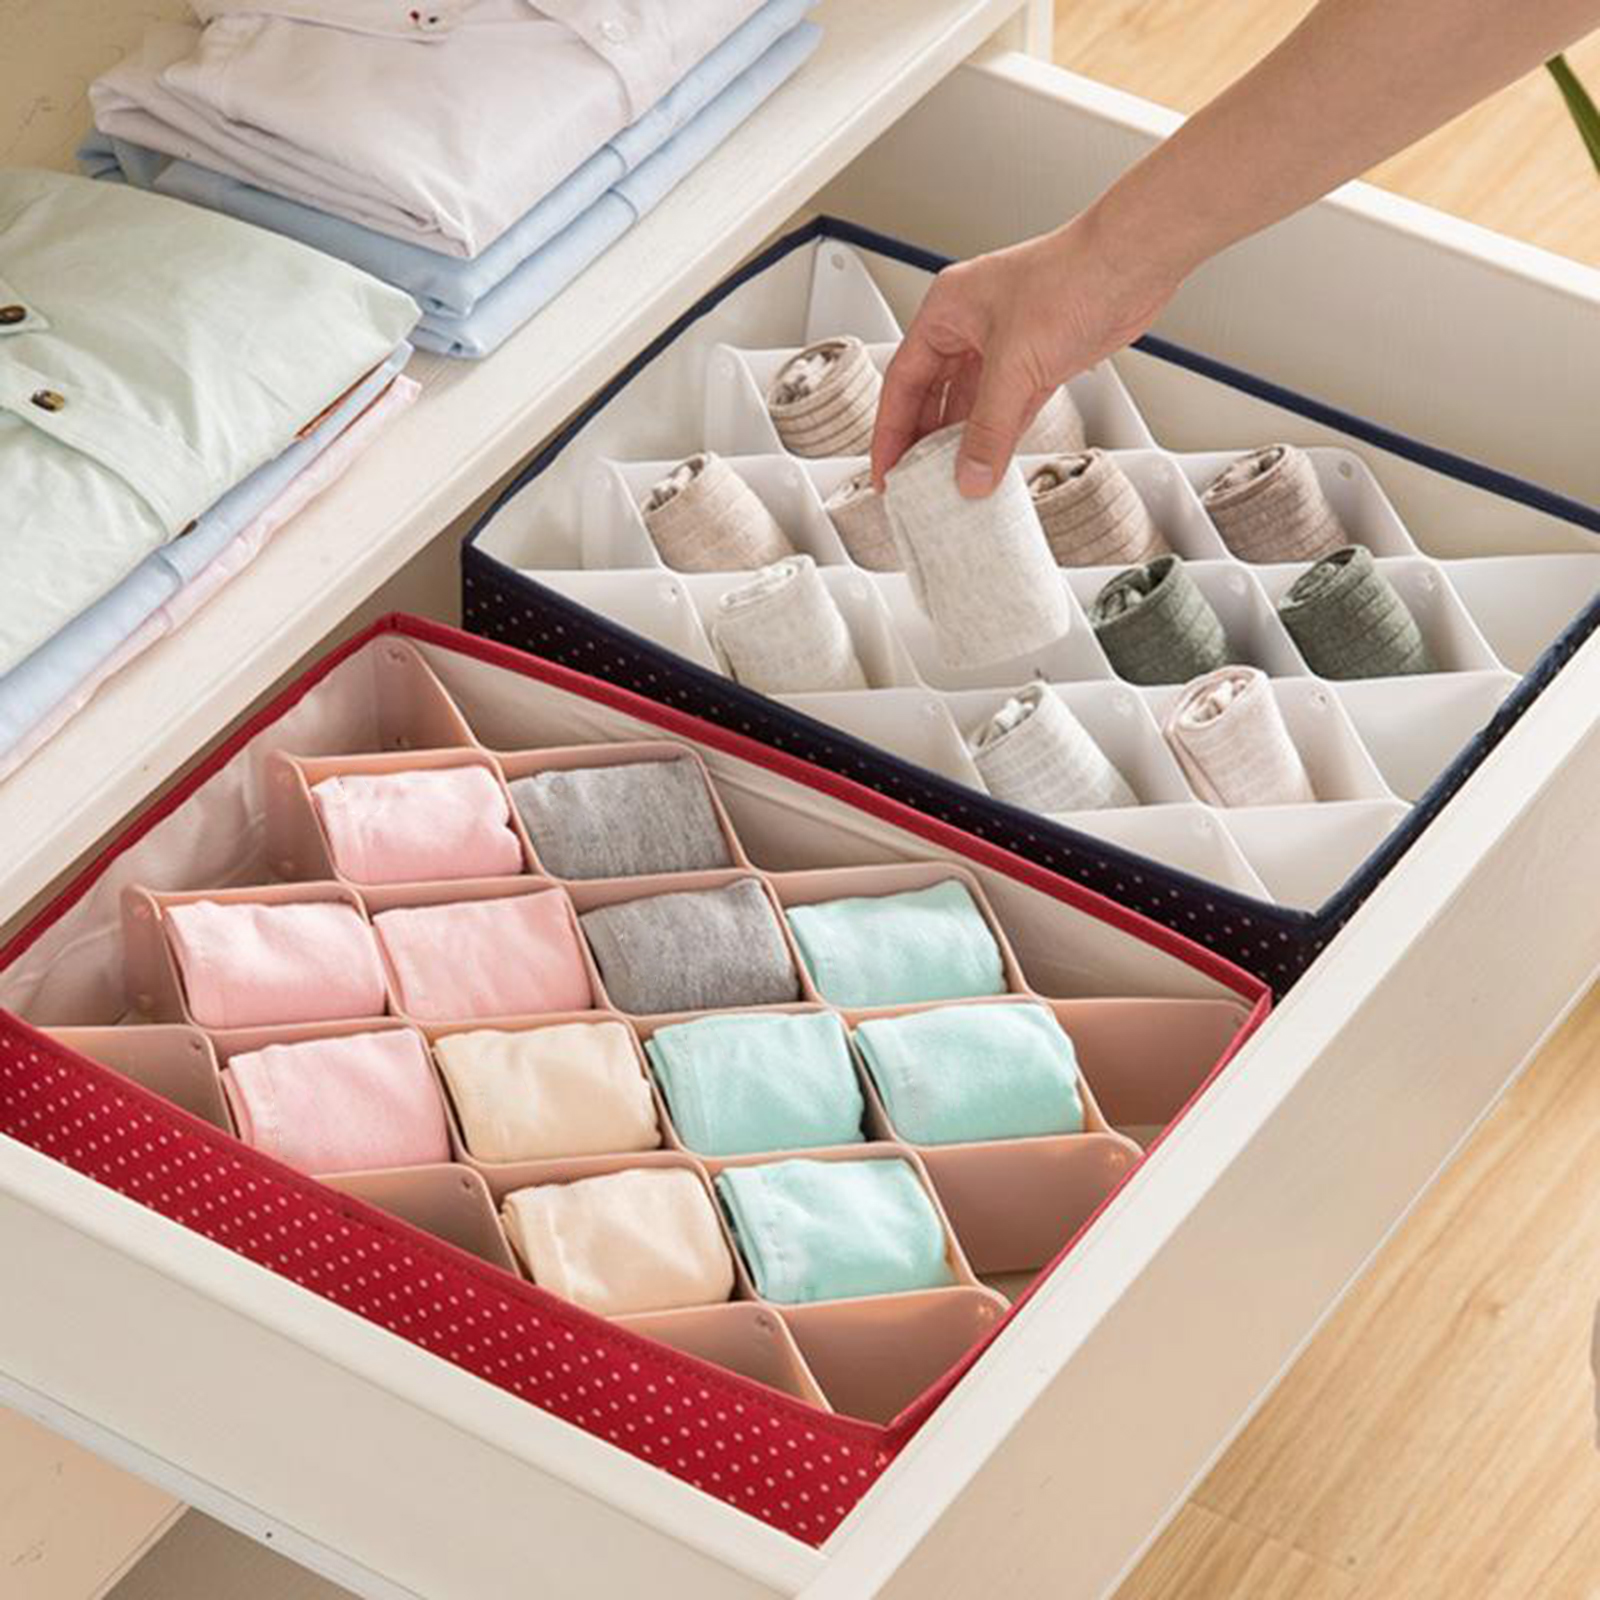 Foldable Storage Boxes Divide For Storing Socks Bras Scarves Organizer Box Storage Drawers Cloth Underwear Baskets